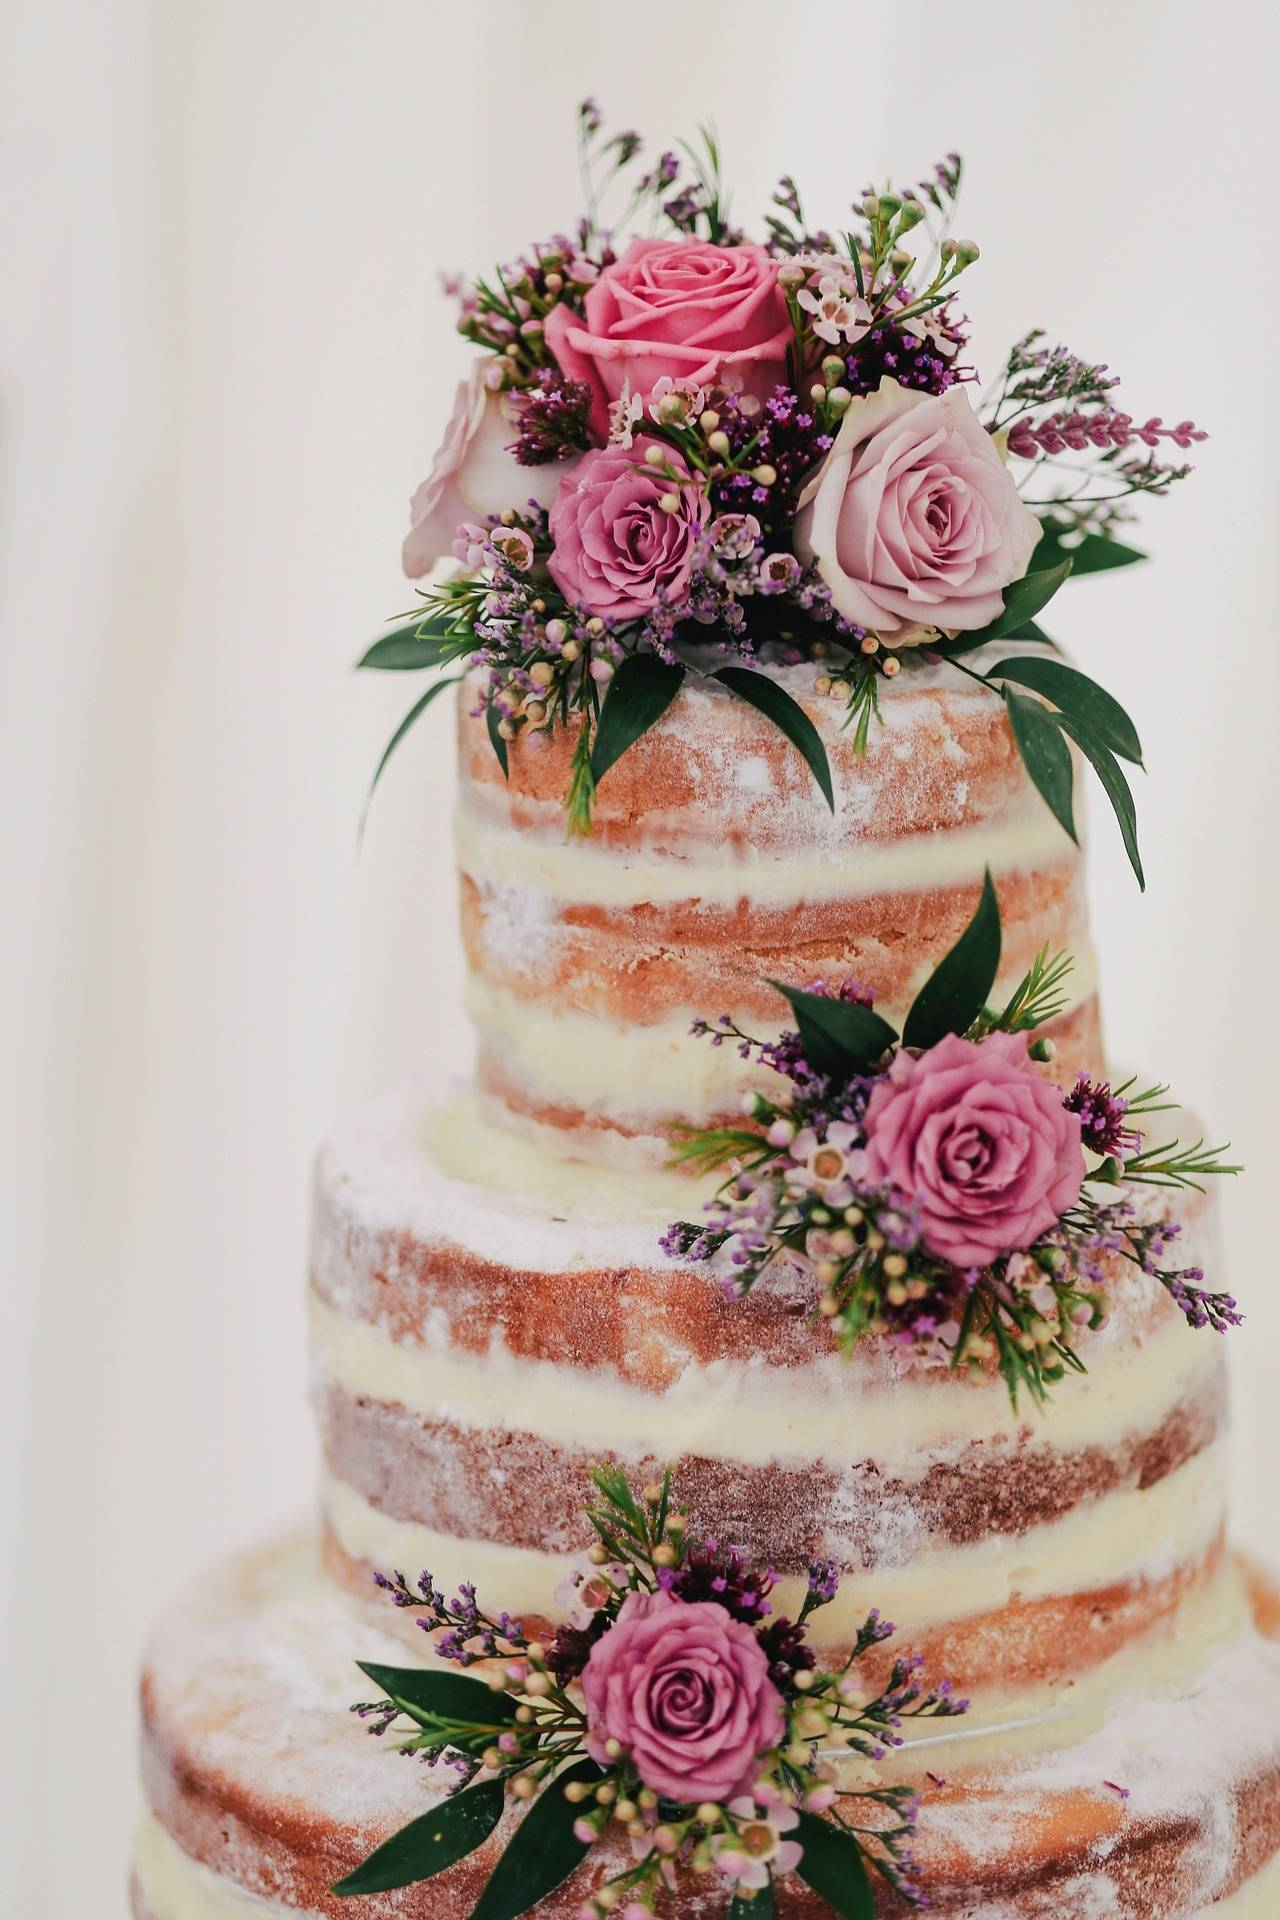 A naked wedding cake with flowers